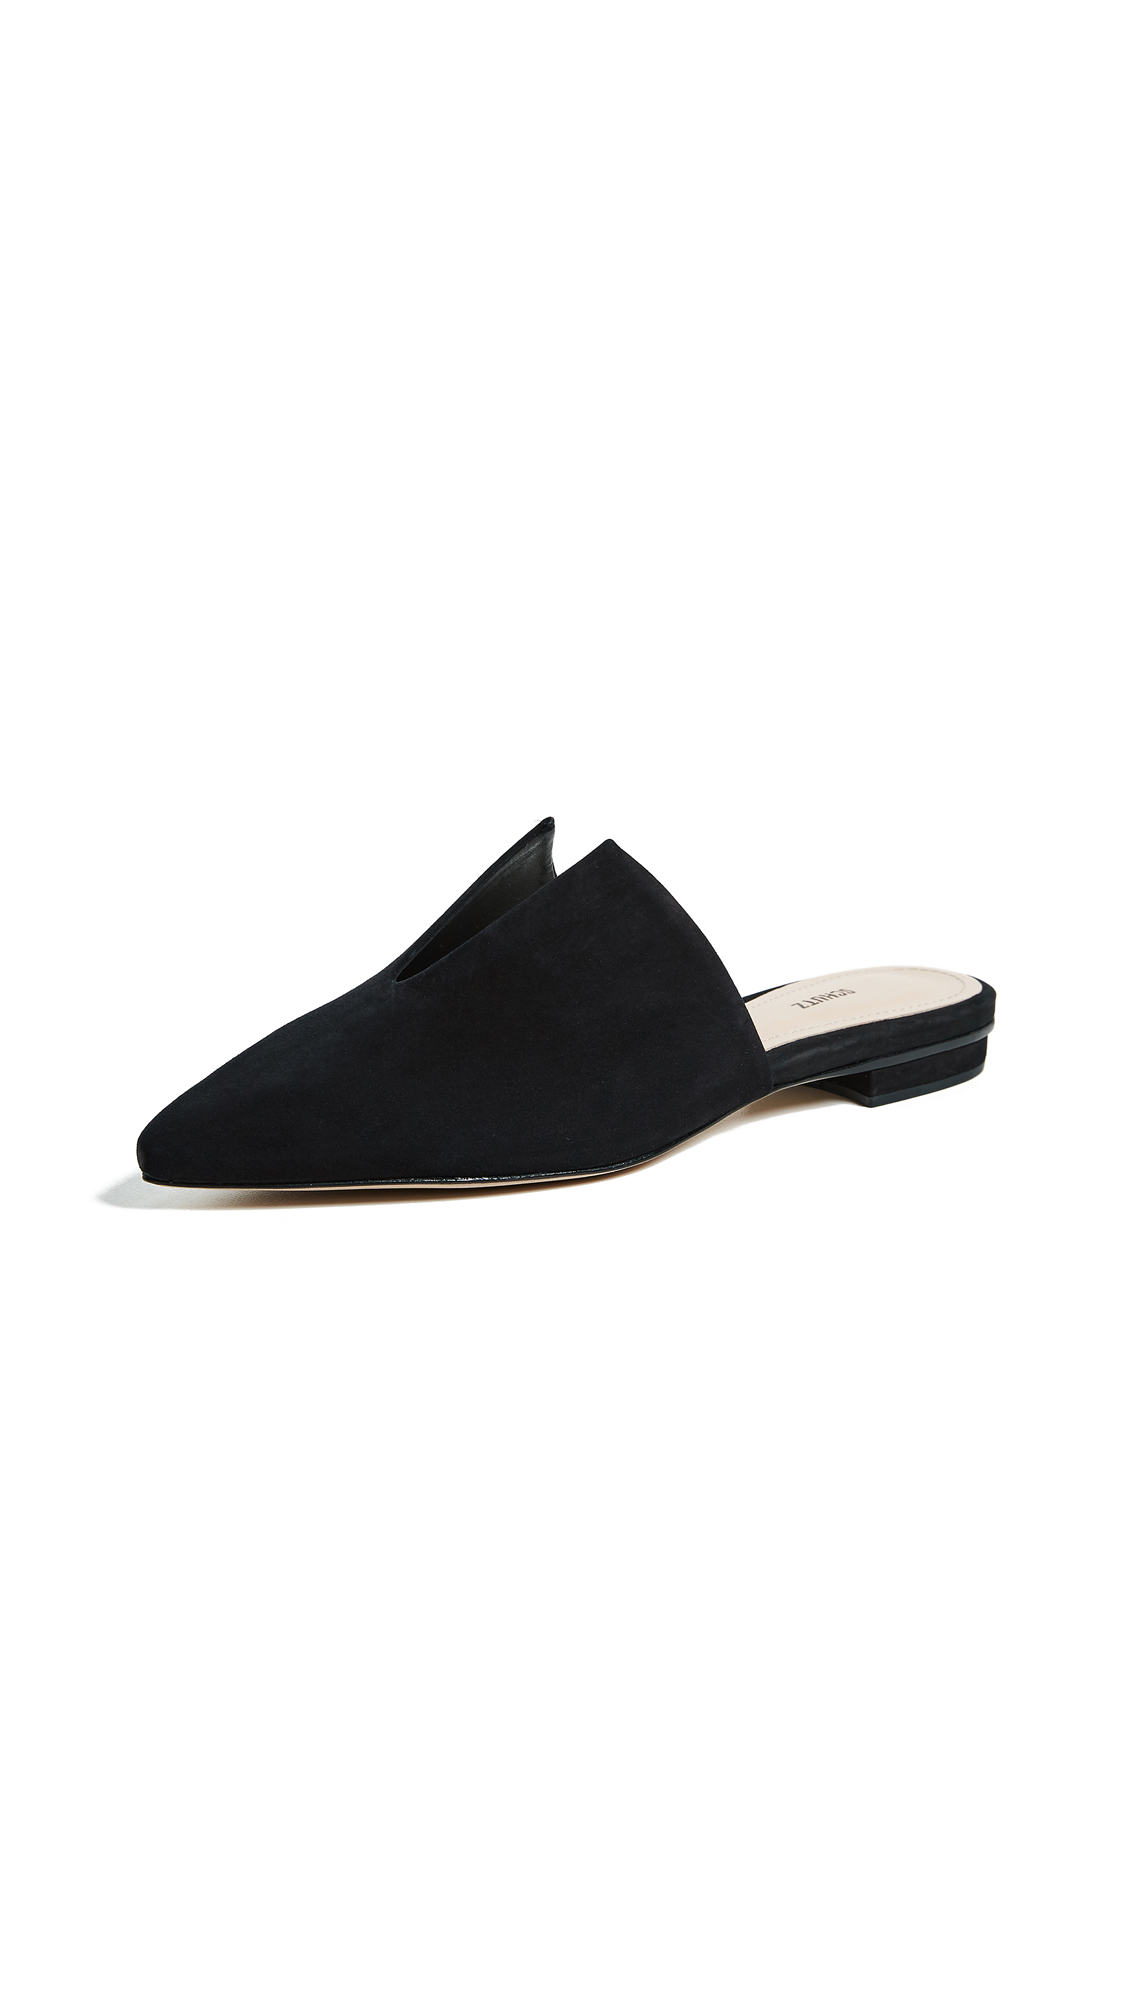 Schutz Kirsten Point Toe Mules - Black